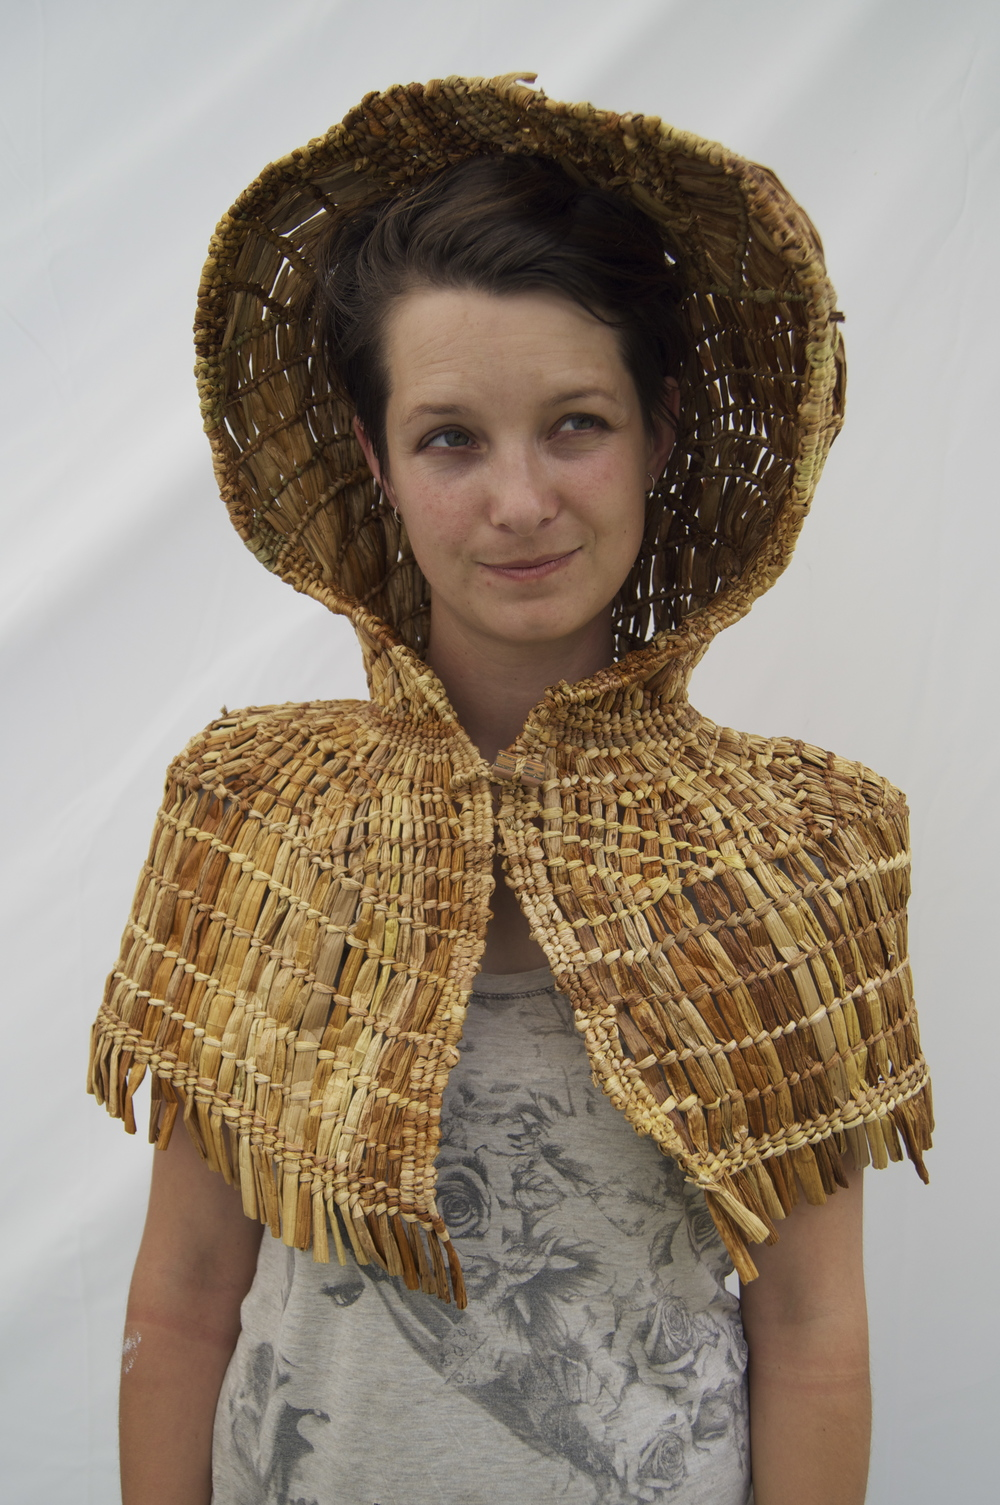 'In the Hood' Woven out of Kuta a lake reed which is a traditional weaving material used to make rain capes. This piece is about retaining cultural identity while operating in an urban reality. Weaving by Bethany Edmunds, January 2014